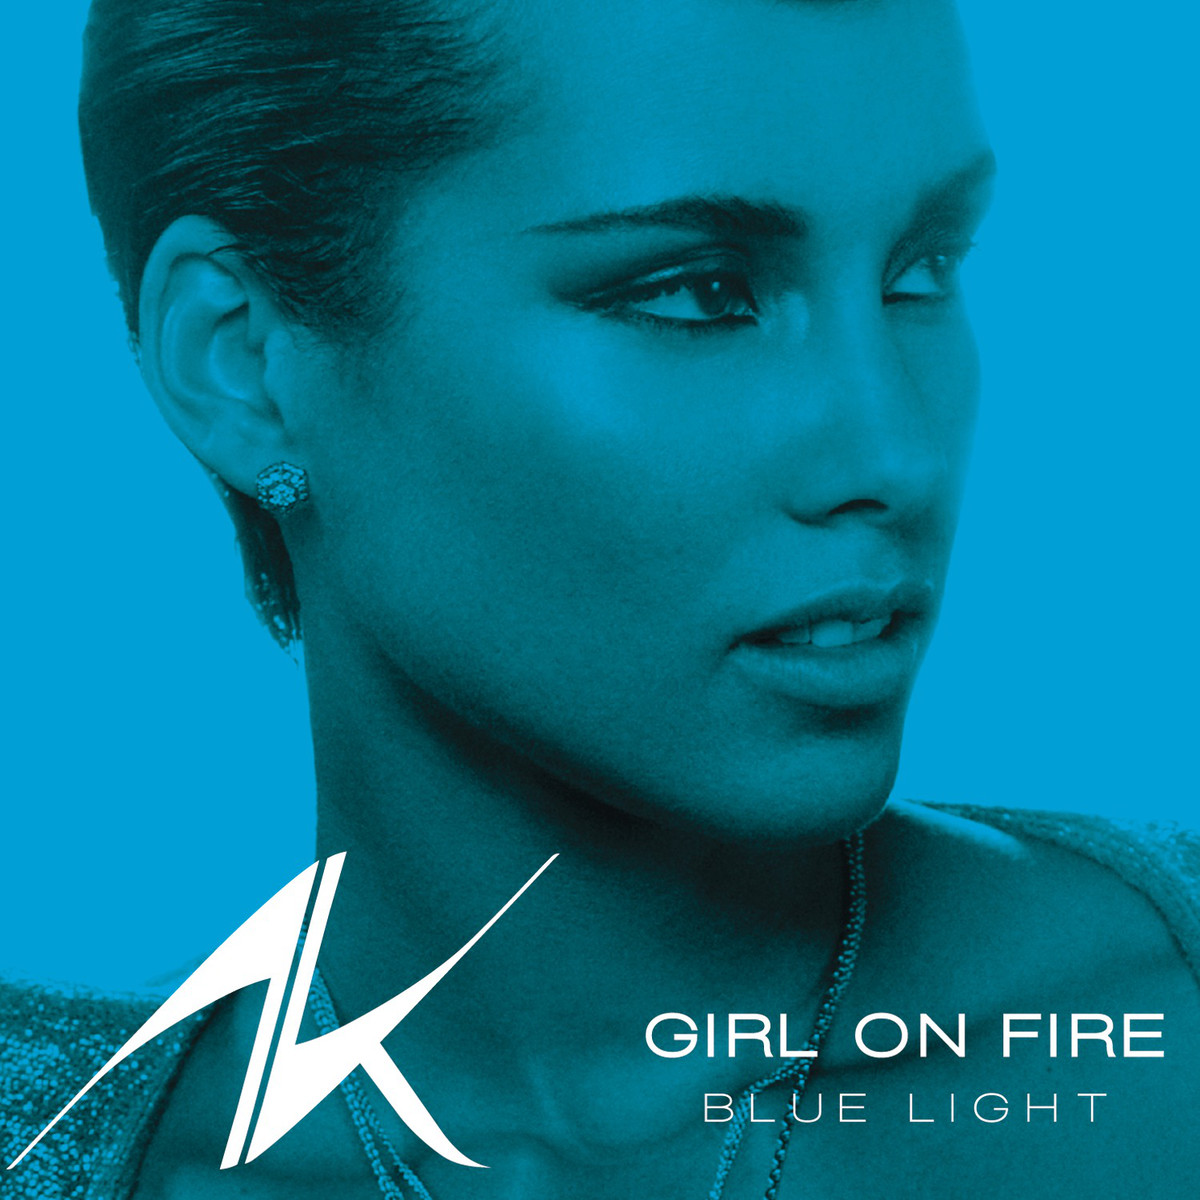 http://1.bp.blogspot.com/-n3yk8VrodXk/ULSZKJr7JPI/AAAAAAAAAO8/b7VONL0N8zQ/s1600/Alicia-Keys-feat.-Nicki-Minaj-Girl-On-Fire-Blue-Light-COVER.png